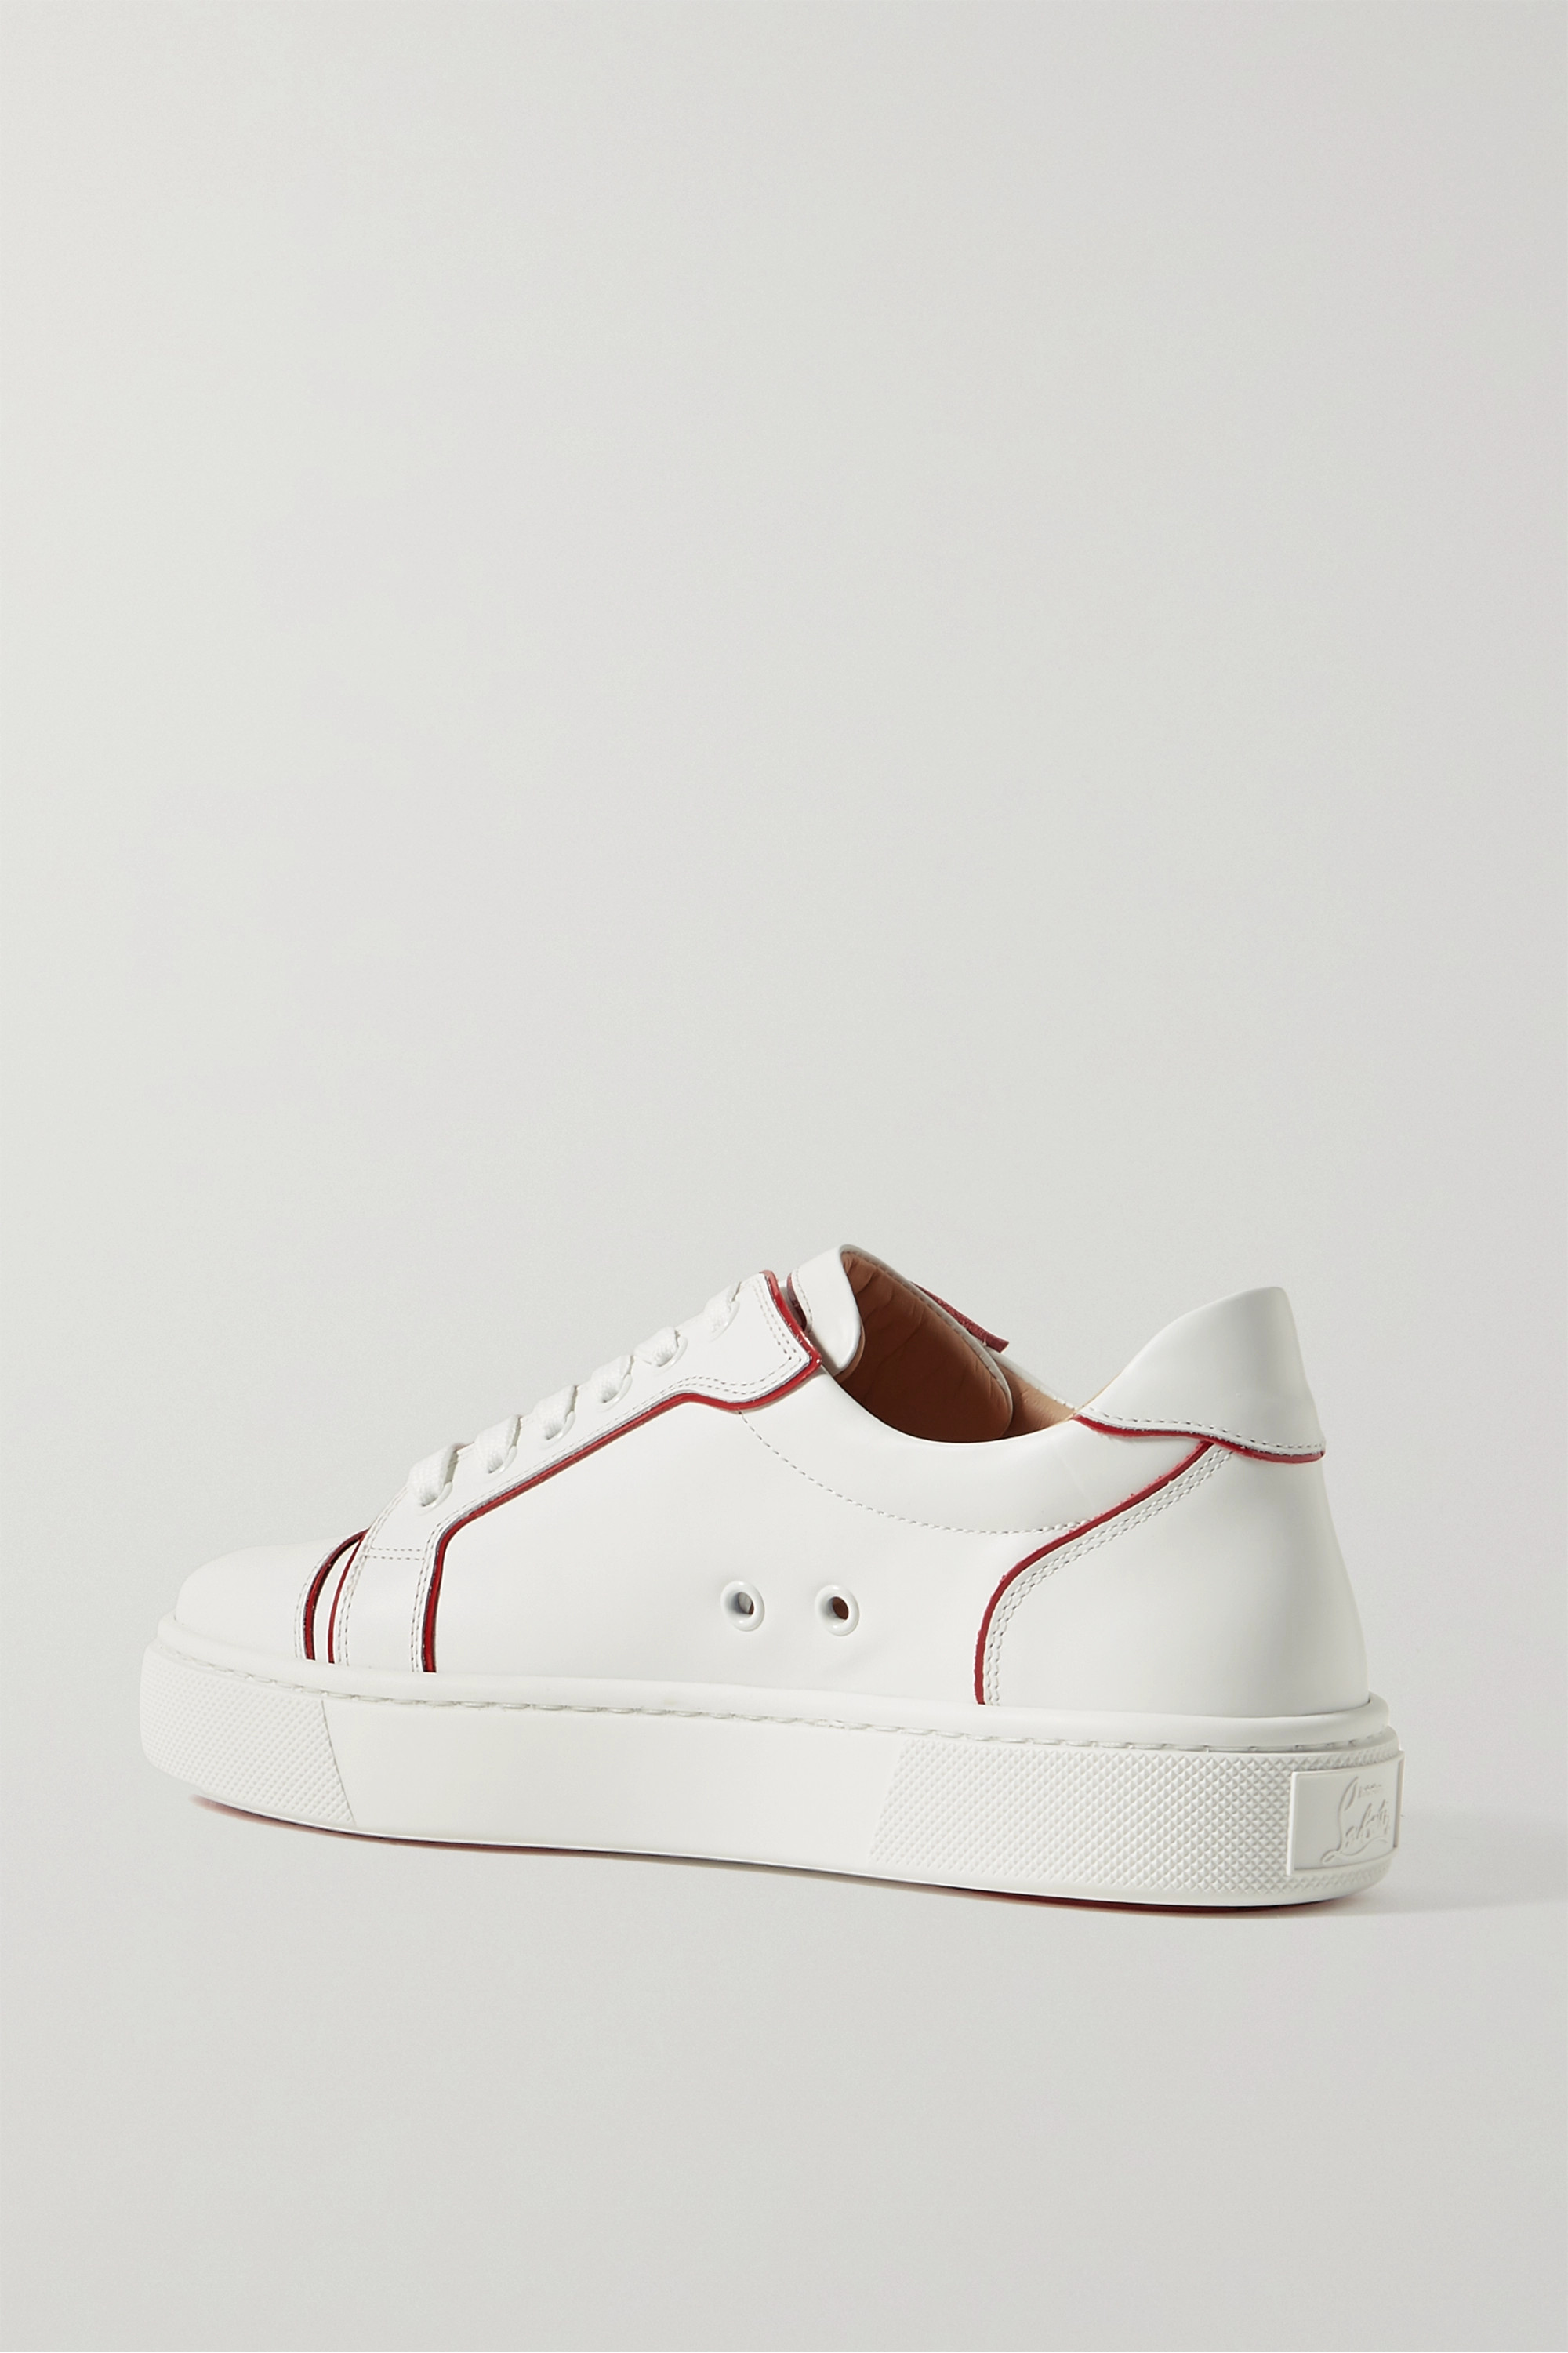 CHRISTIAN LOUBOUTIN Vieirissima two-tone leather sneakers